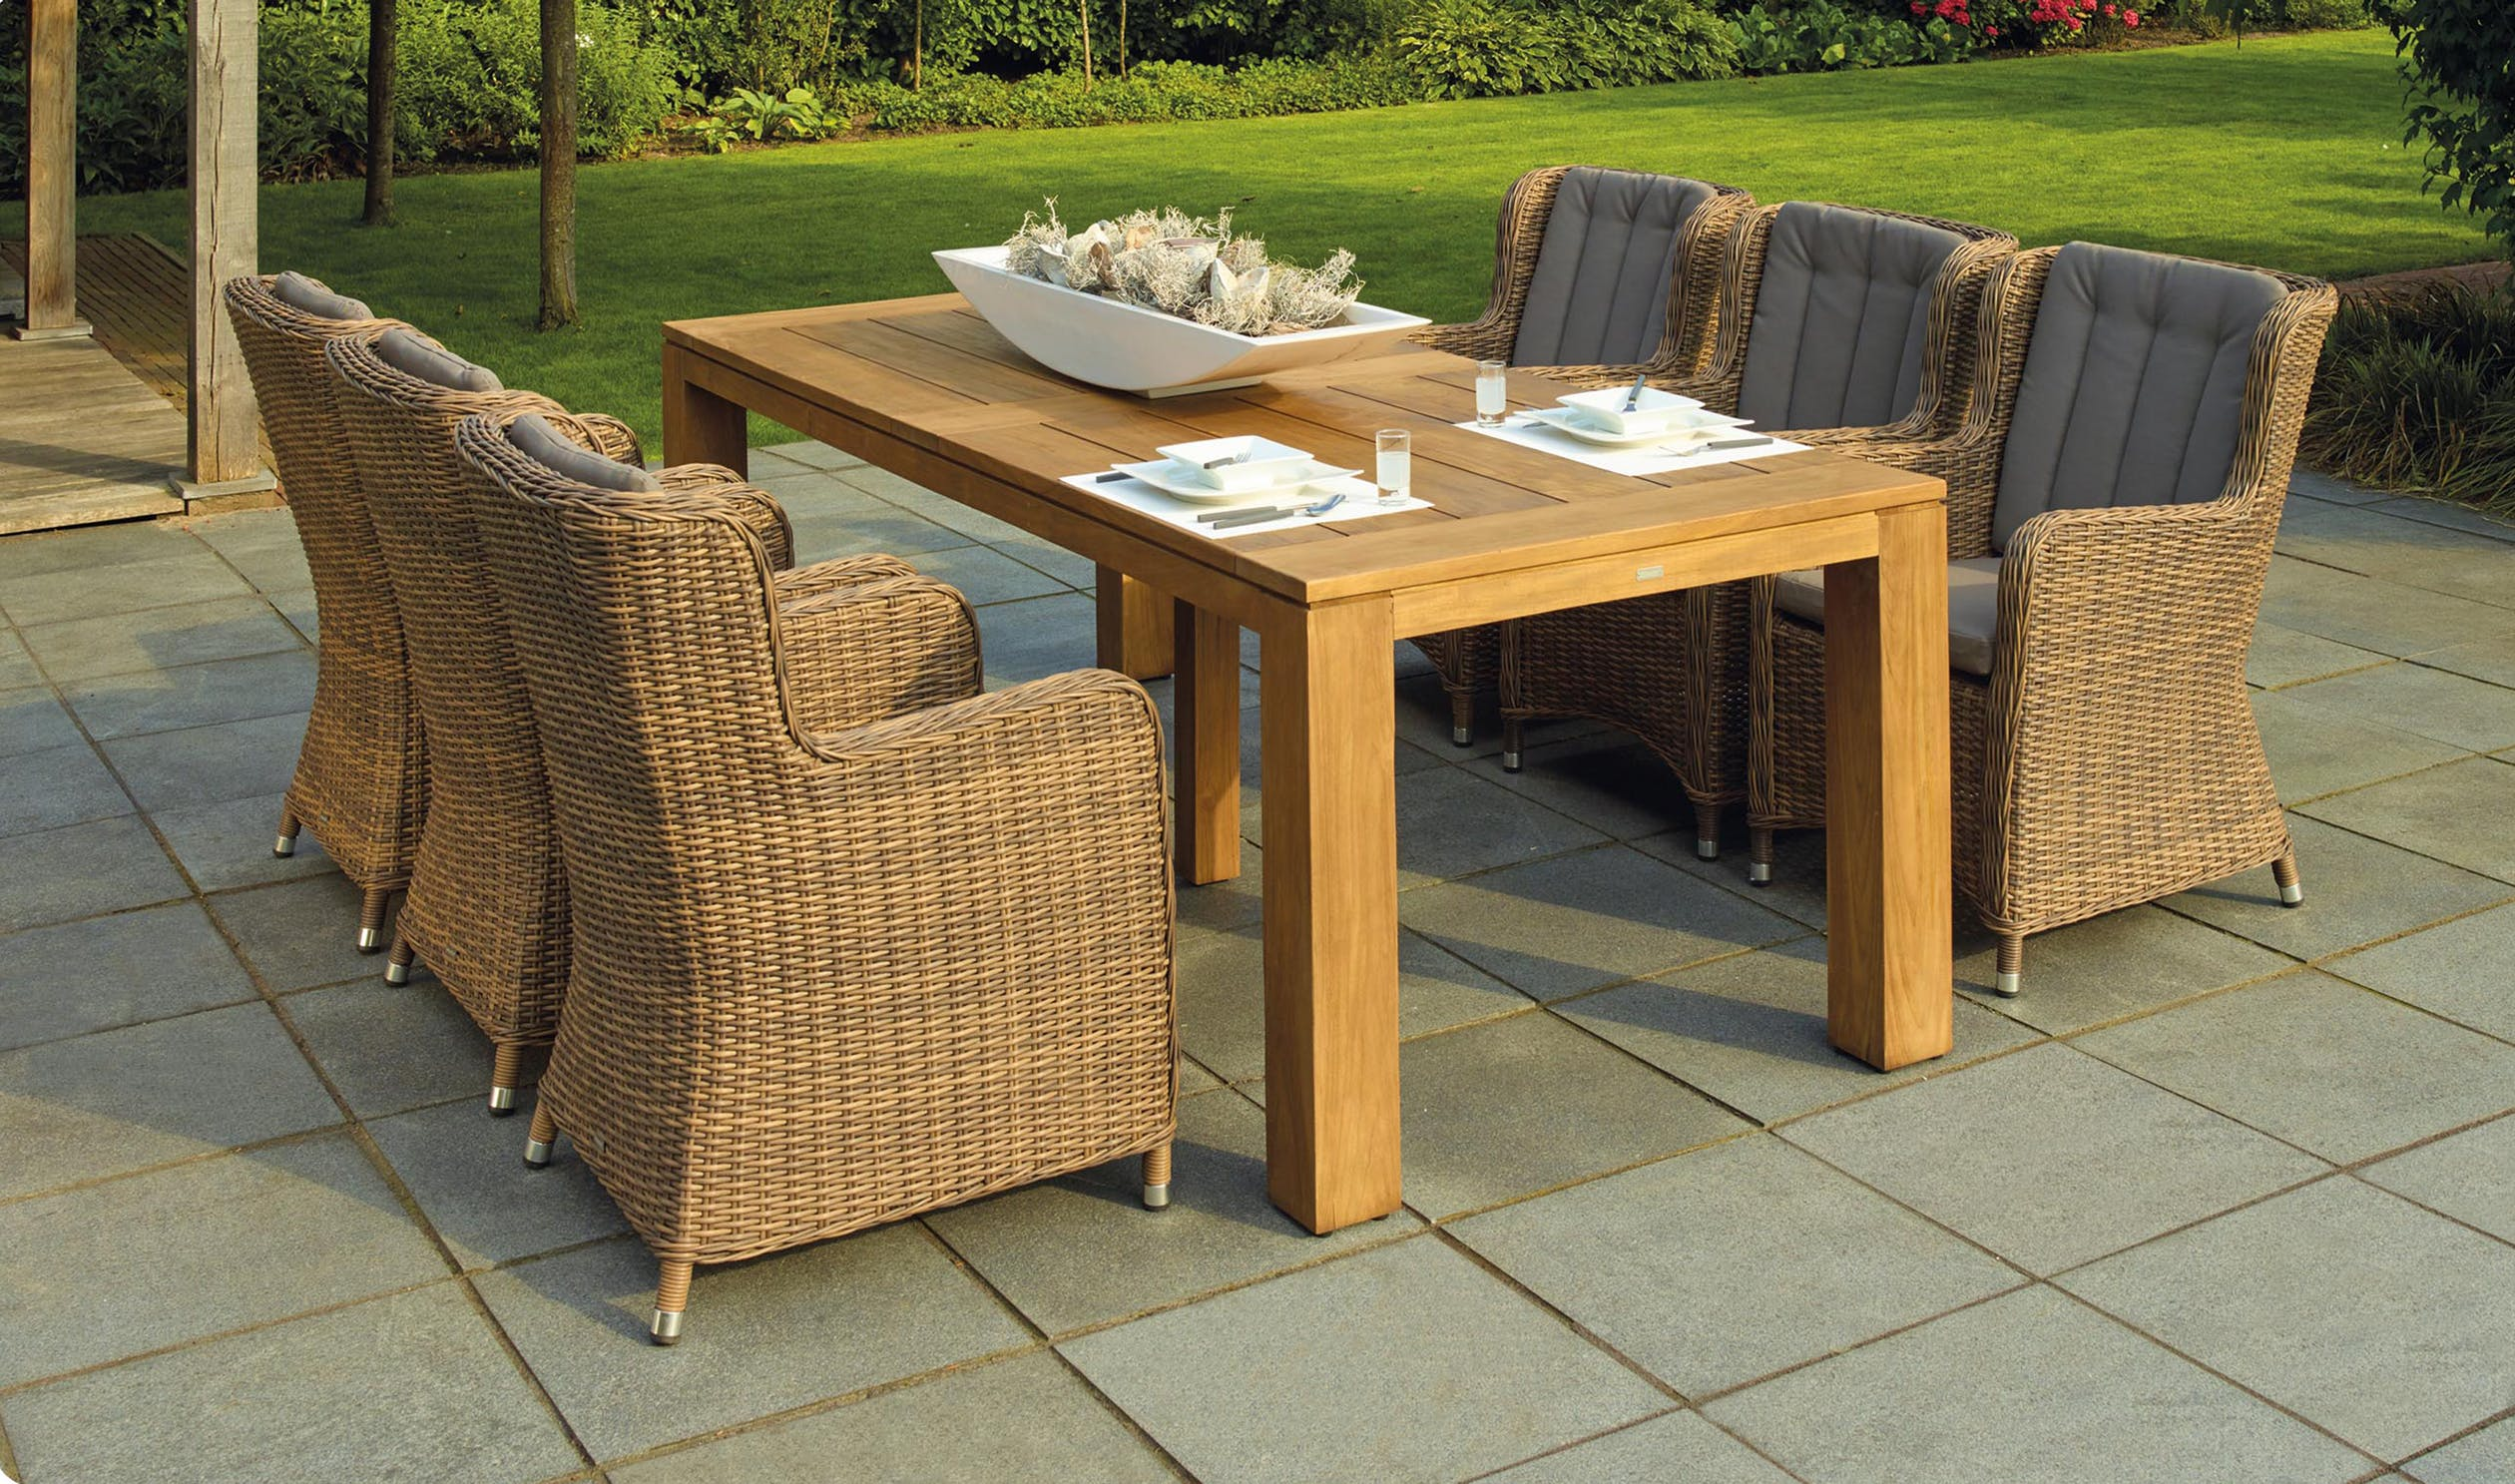 wooden garden table with six wicker chairs.